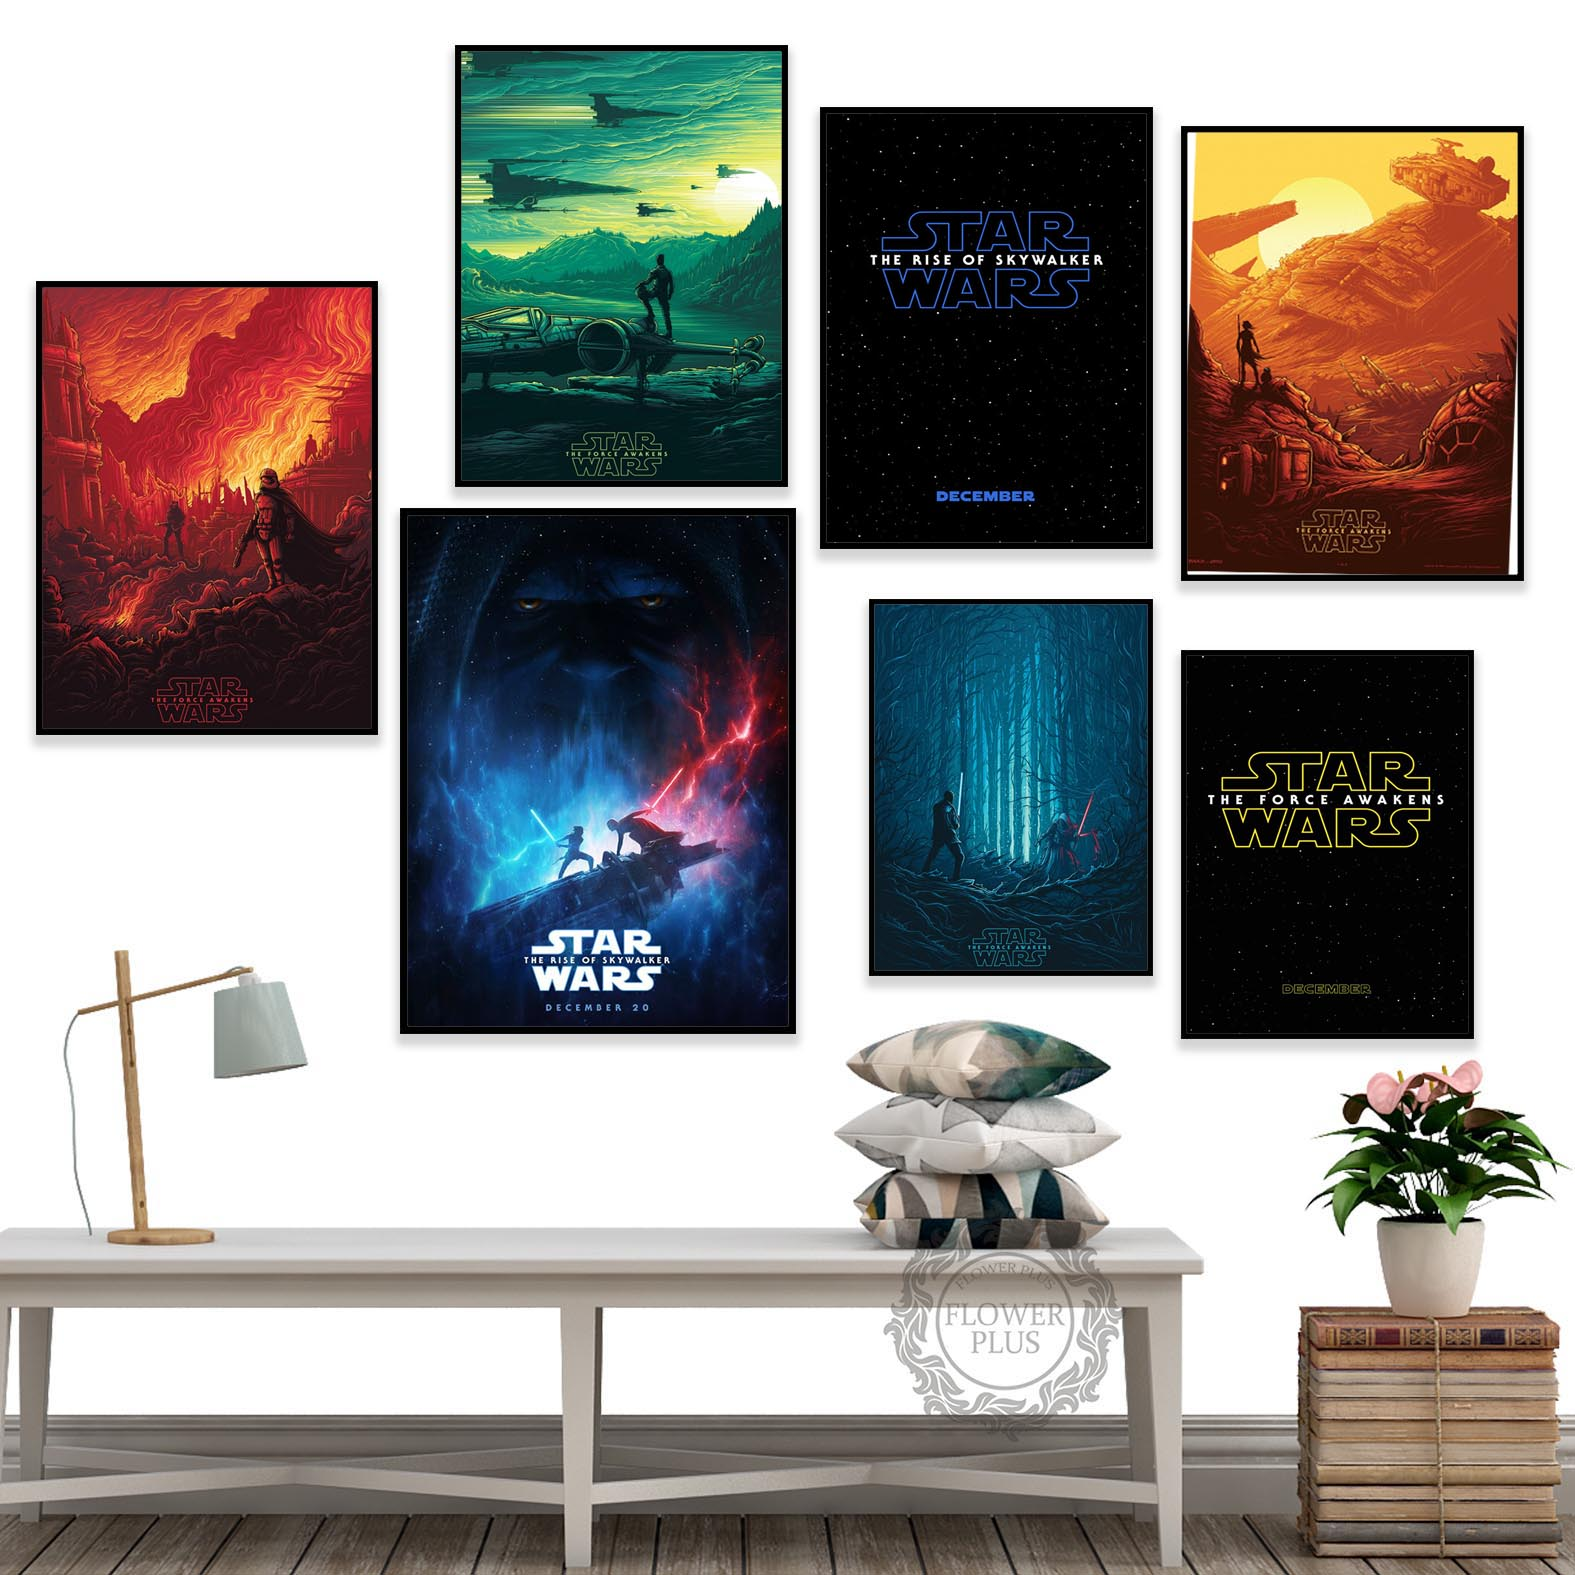 Star Wars Classic Movie Posters Canvas Paintings Gift Boy Wall Pictures Prints Art for Kids Living Room Home Decor obrazy plakat image